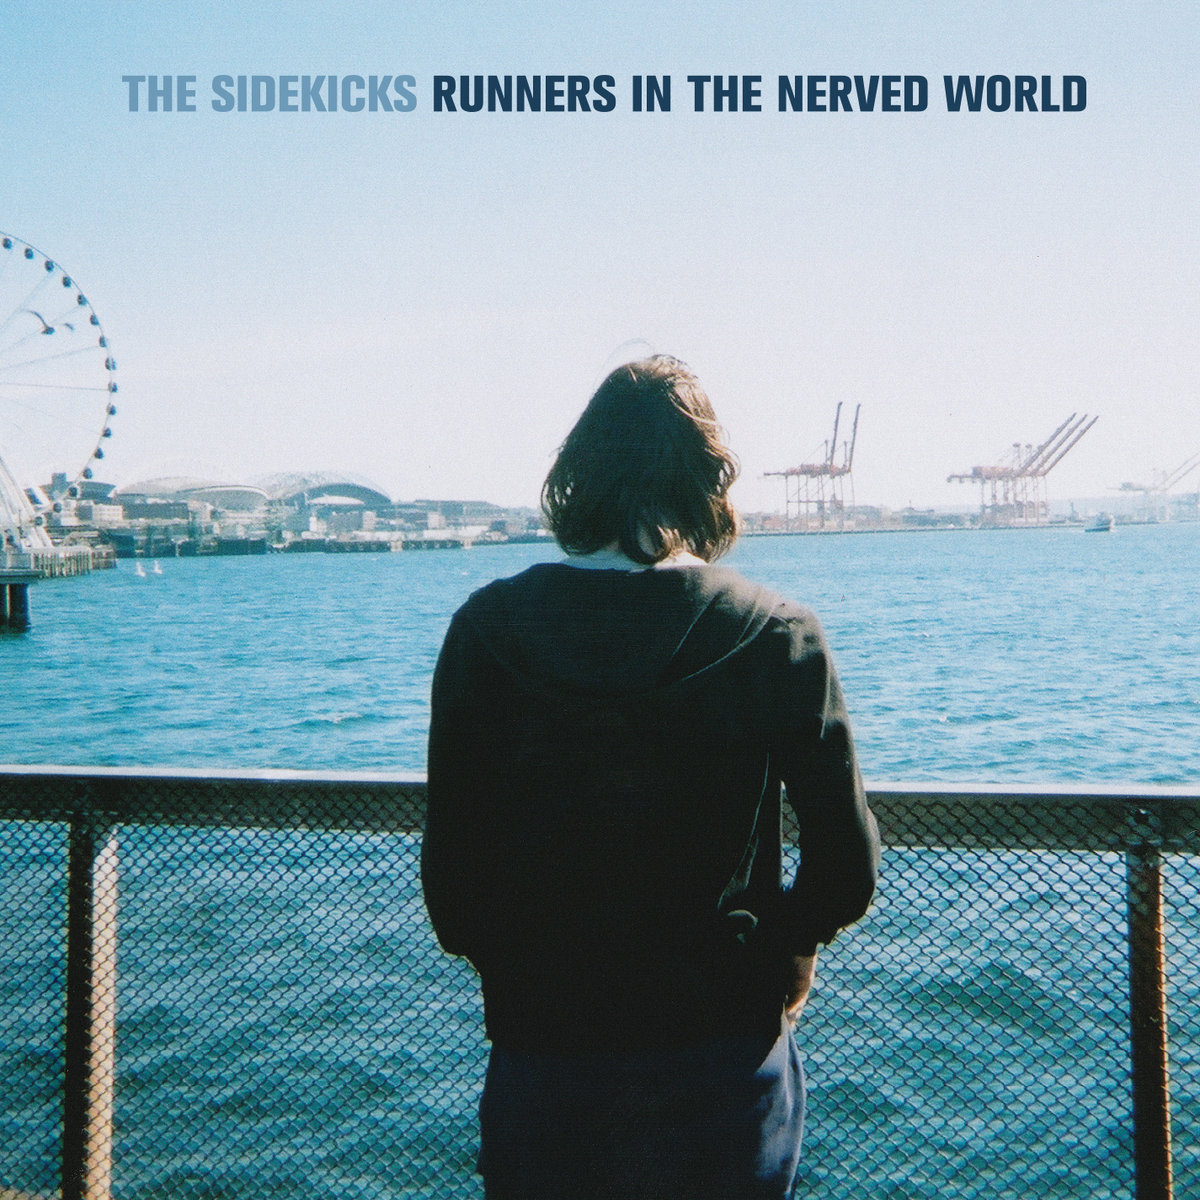 RUNNERS IN THE NERVED WORLD | 2015 | EPITAPH